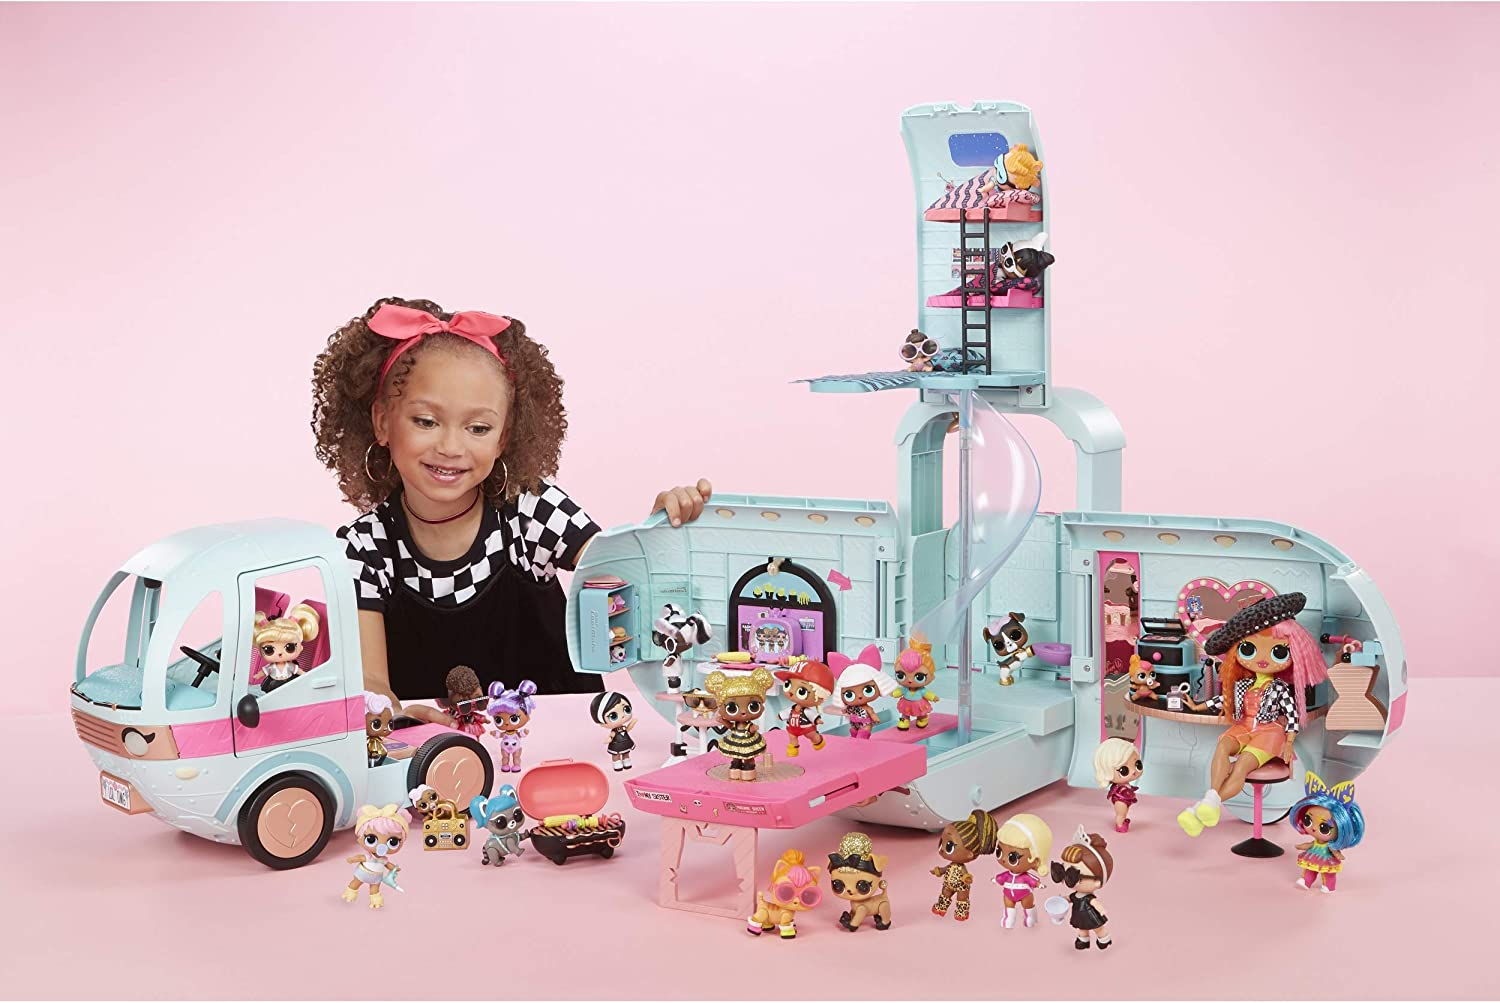 LOL Surprise 4-in-1 Glamper Fashion Camper with 55 Surprises Fully-Furnished wi